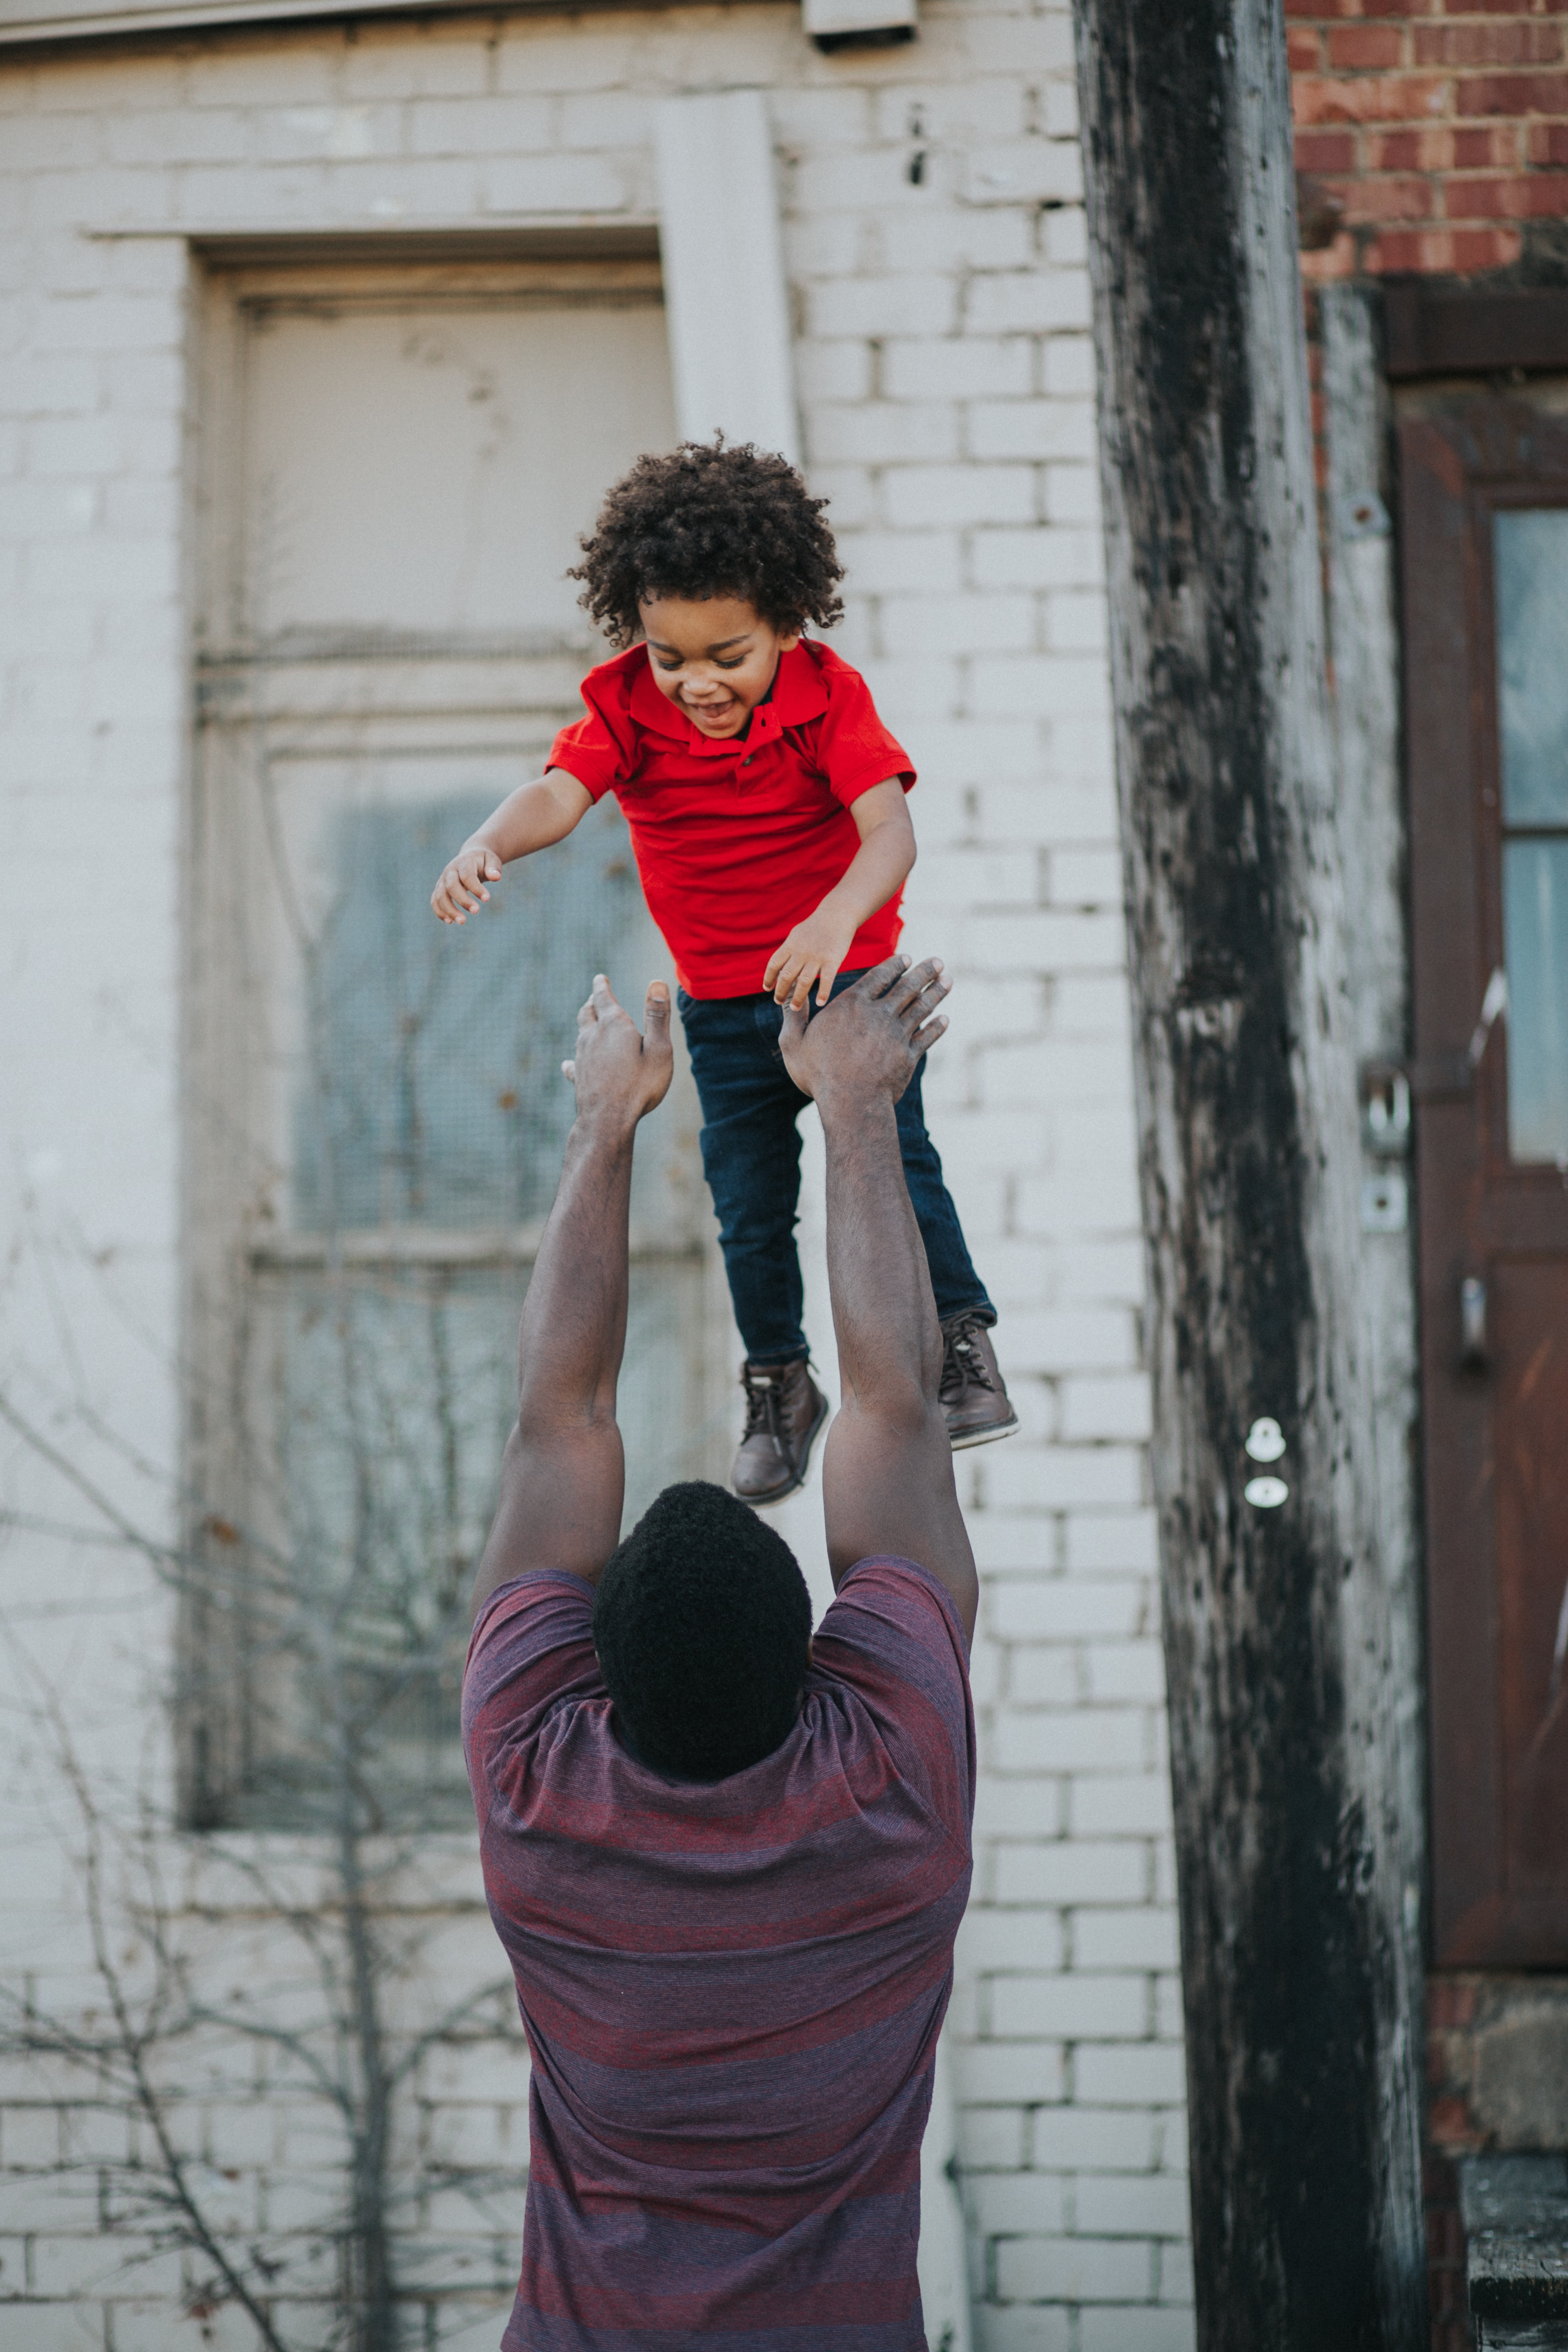 dad tosses his laughing child up in the air